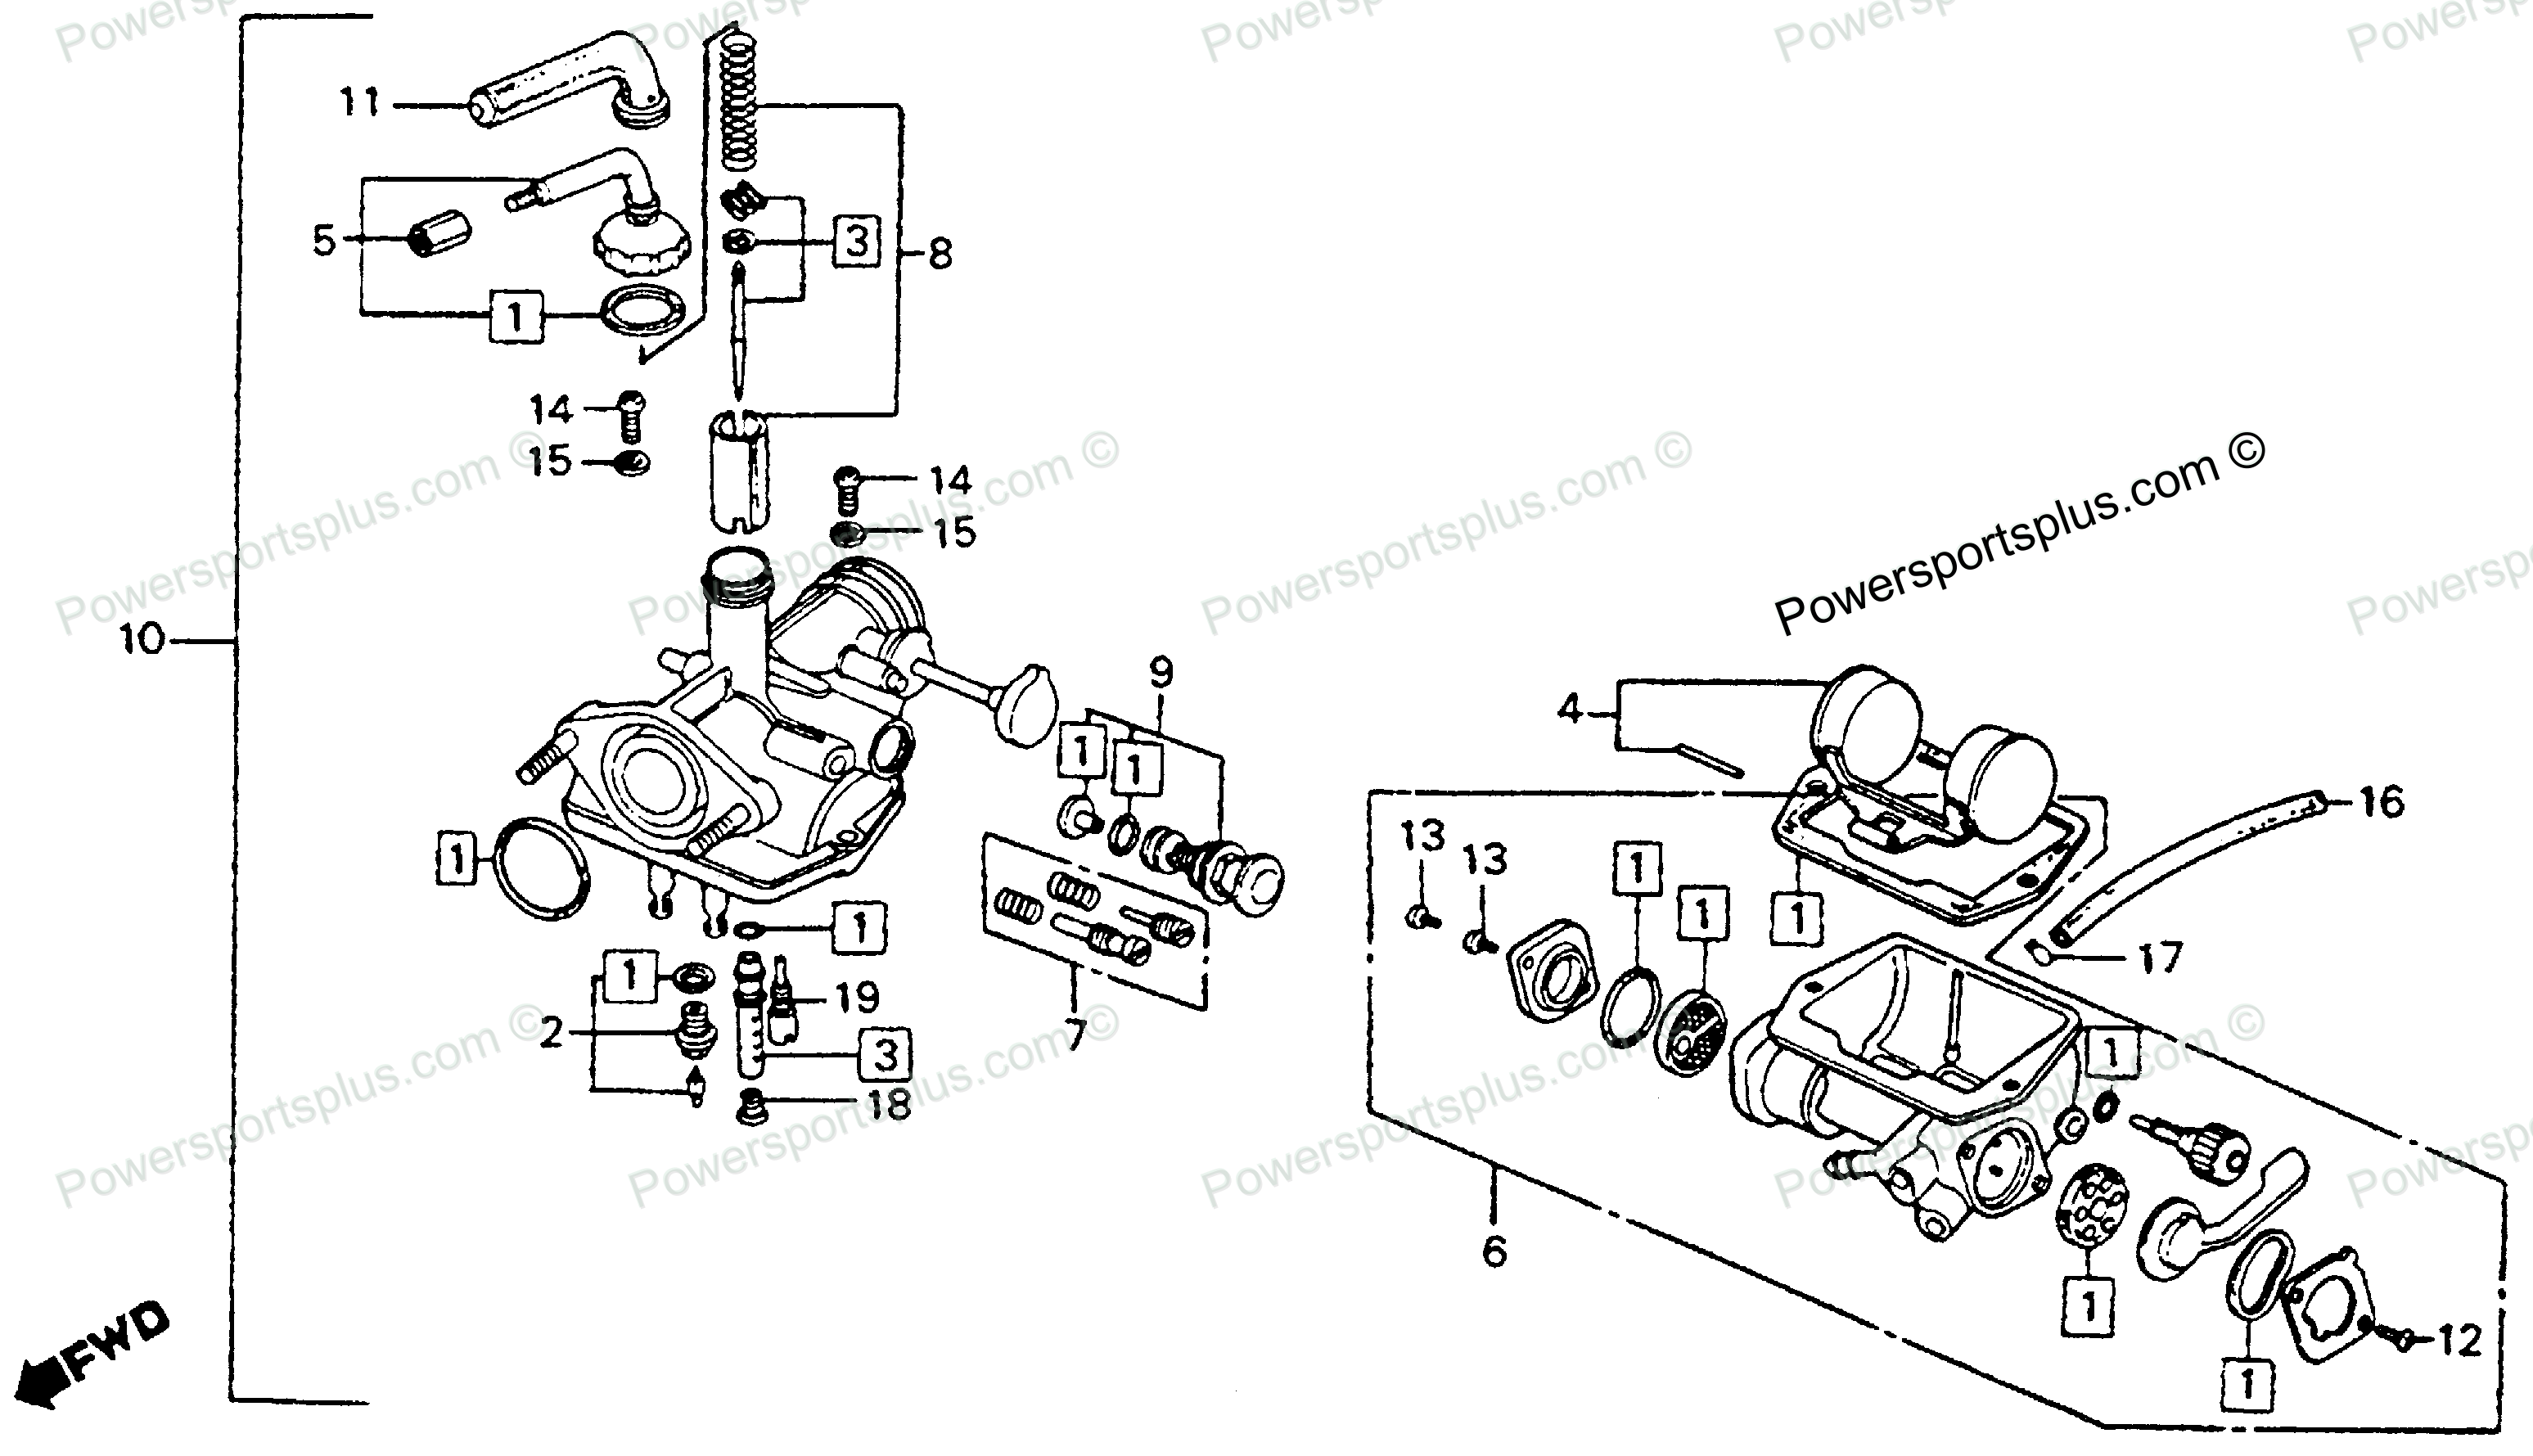 diagram of honda motorcycle parts 1976 ct90 a carburetor k6 77 diagram honda motorcycle parts [ 3095 x 1779 Pixel ]